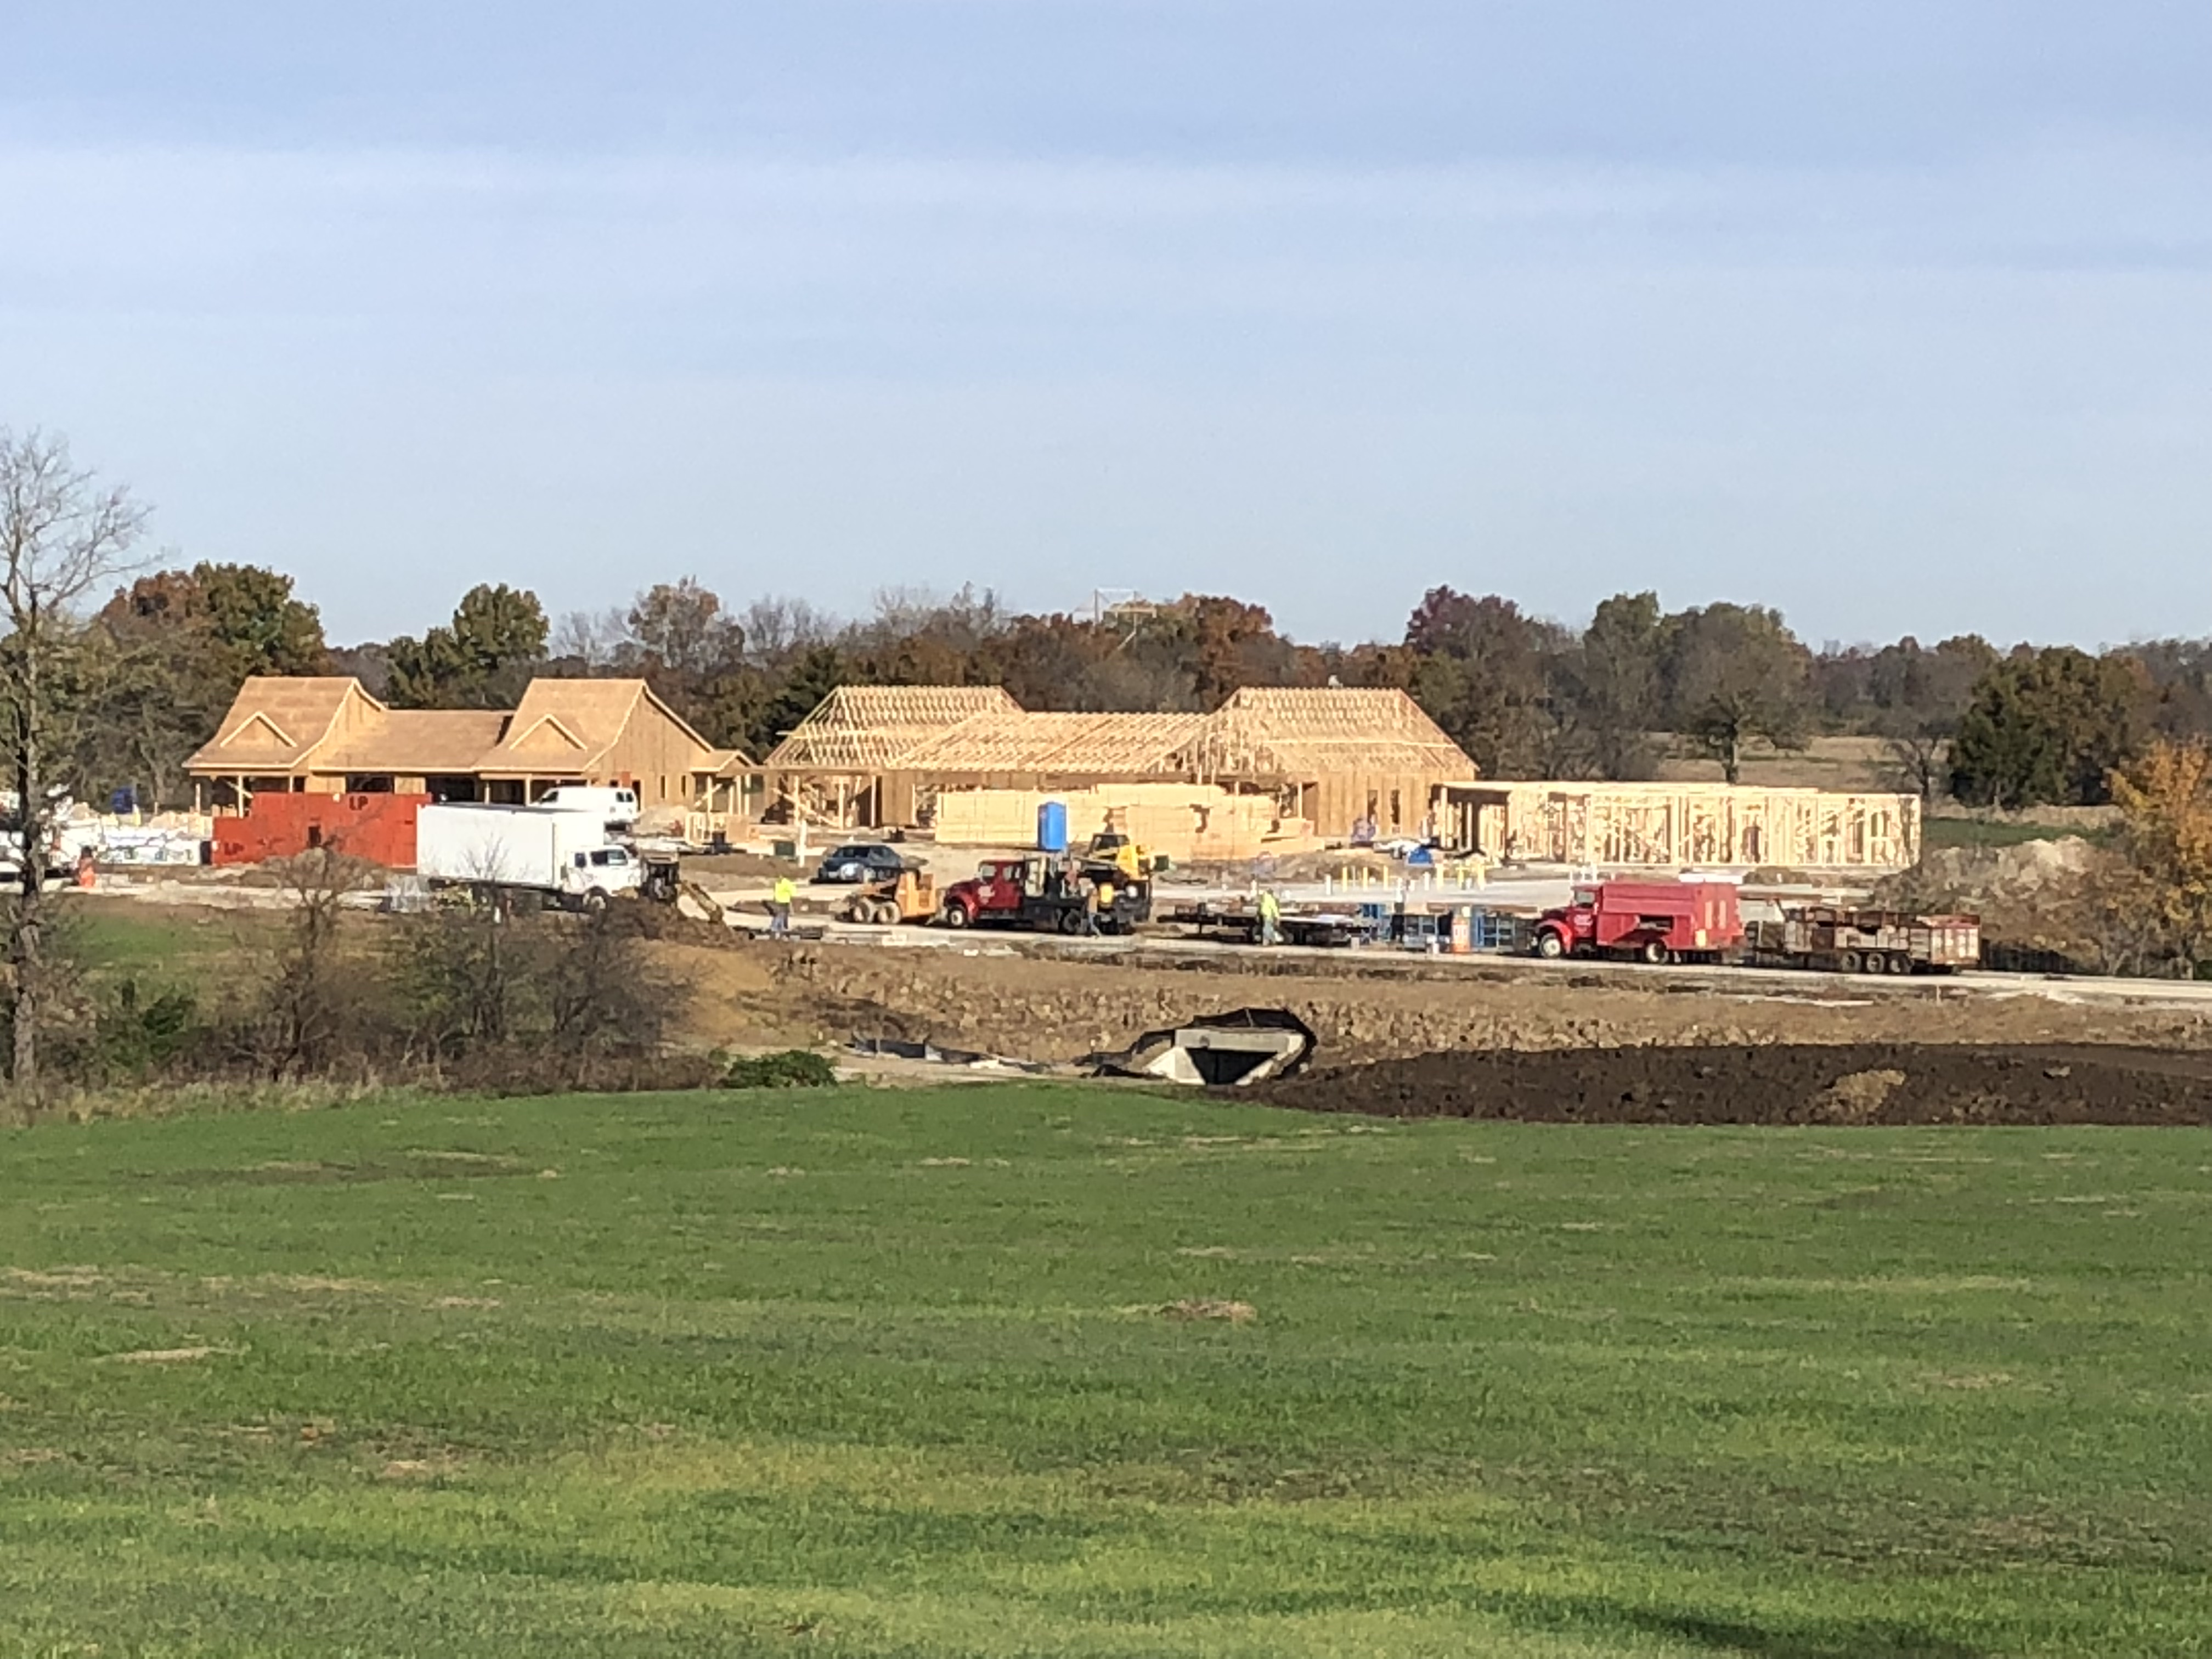 Box culvert for bridge to Ashland campus with foundation site work in background for independent living duplexes